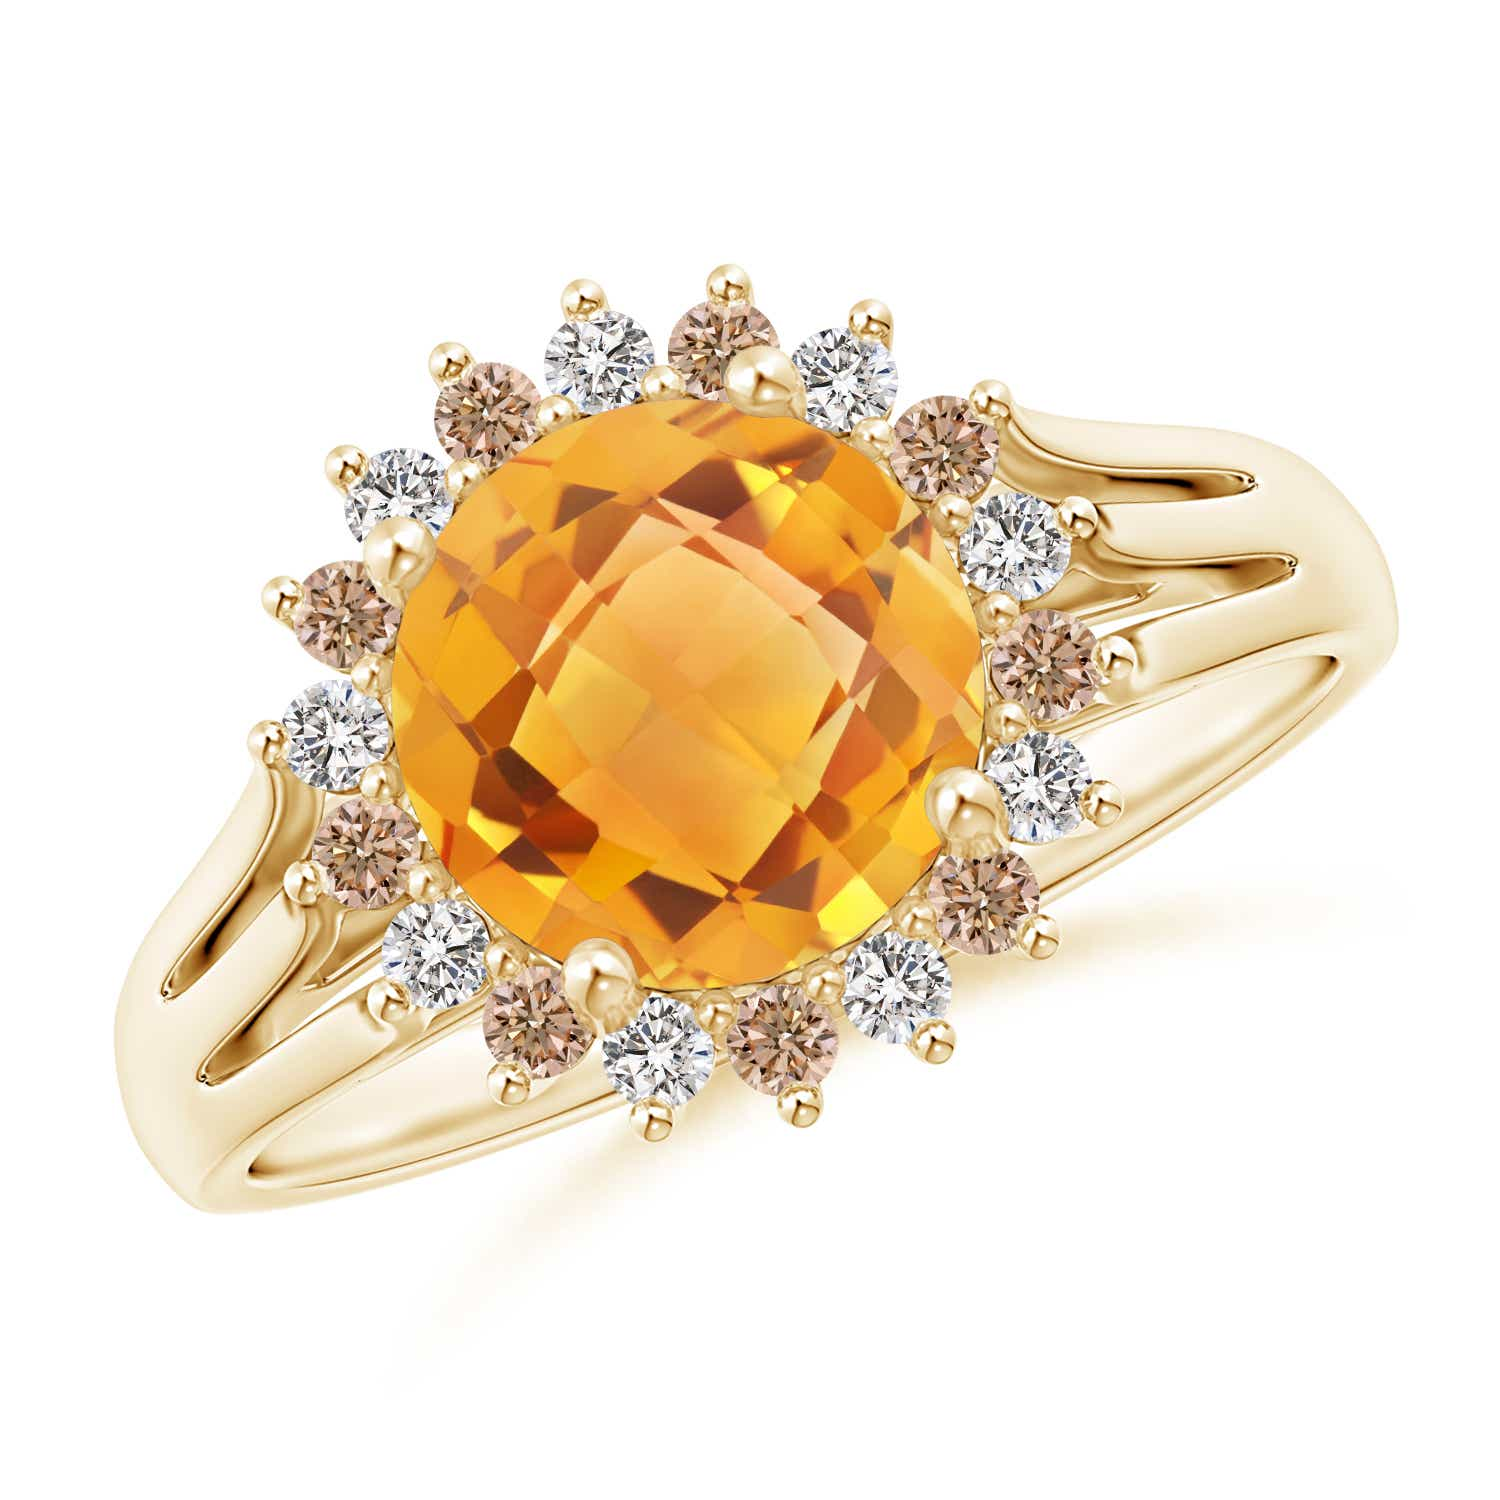 Angara Round Citrine Split Shank Ring with Diamond Halo in 14K Yellow Gold 3oJlCpXO